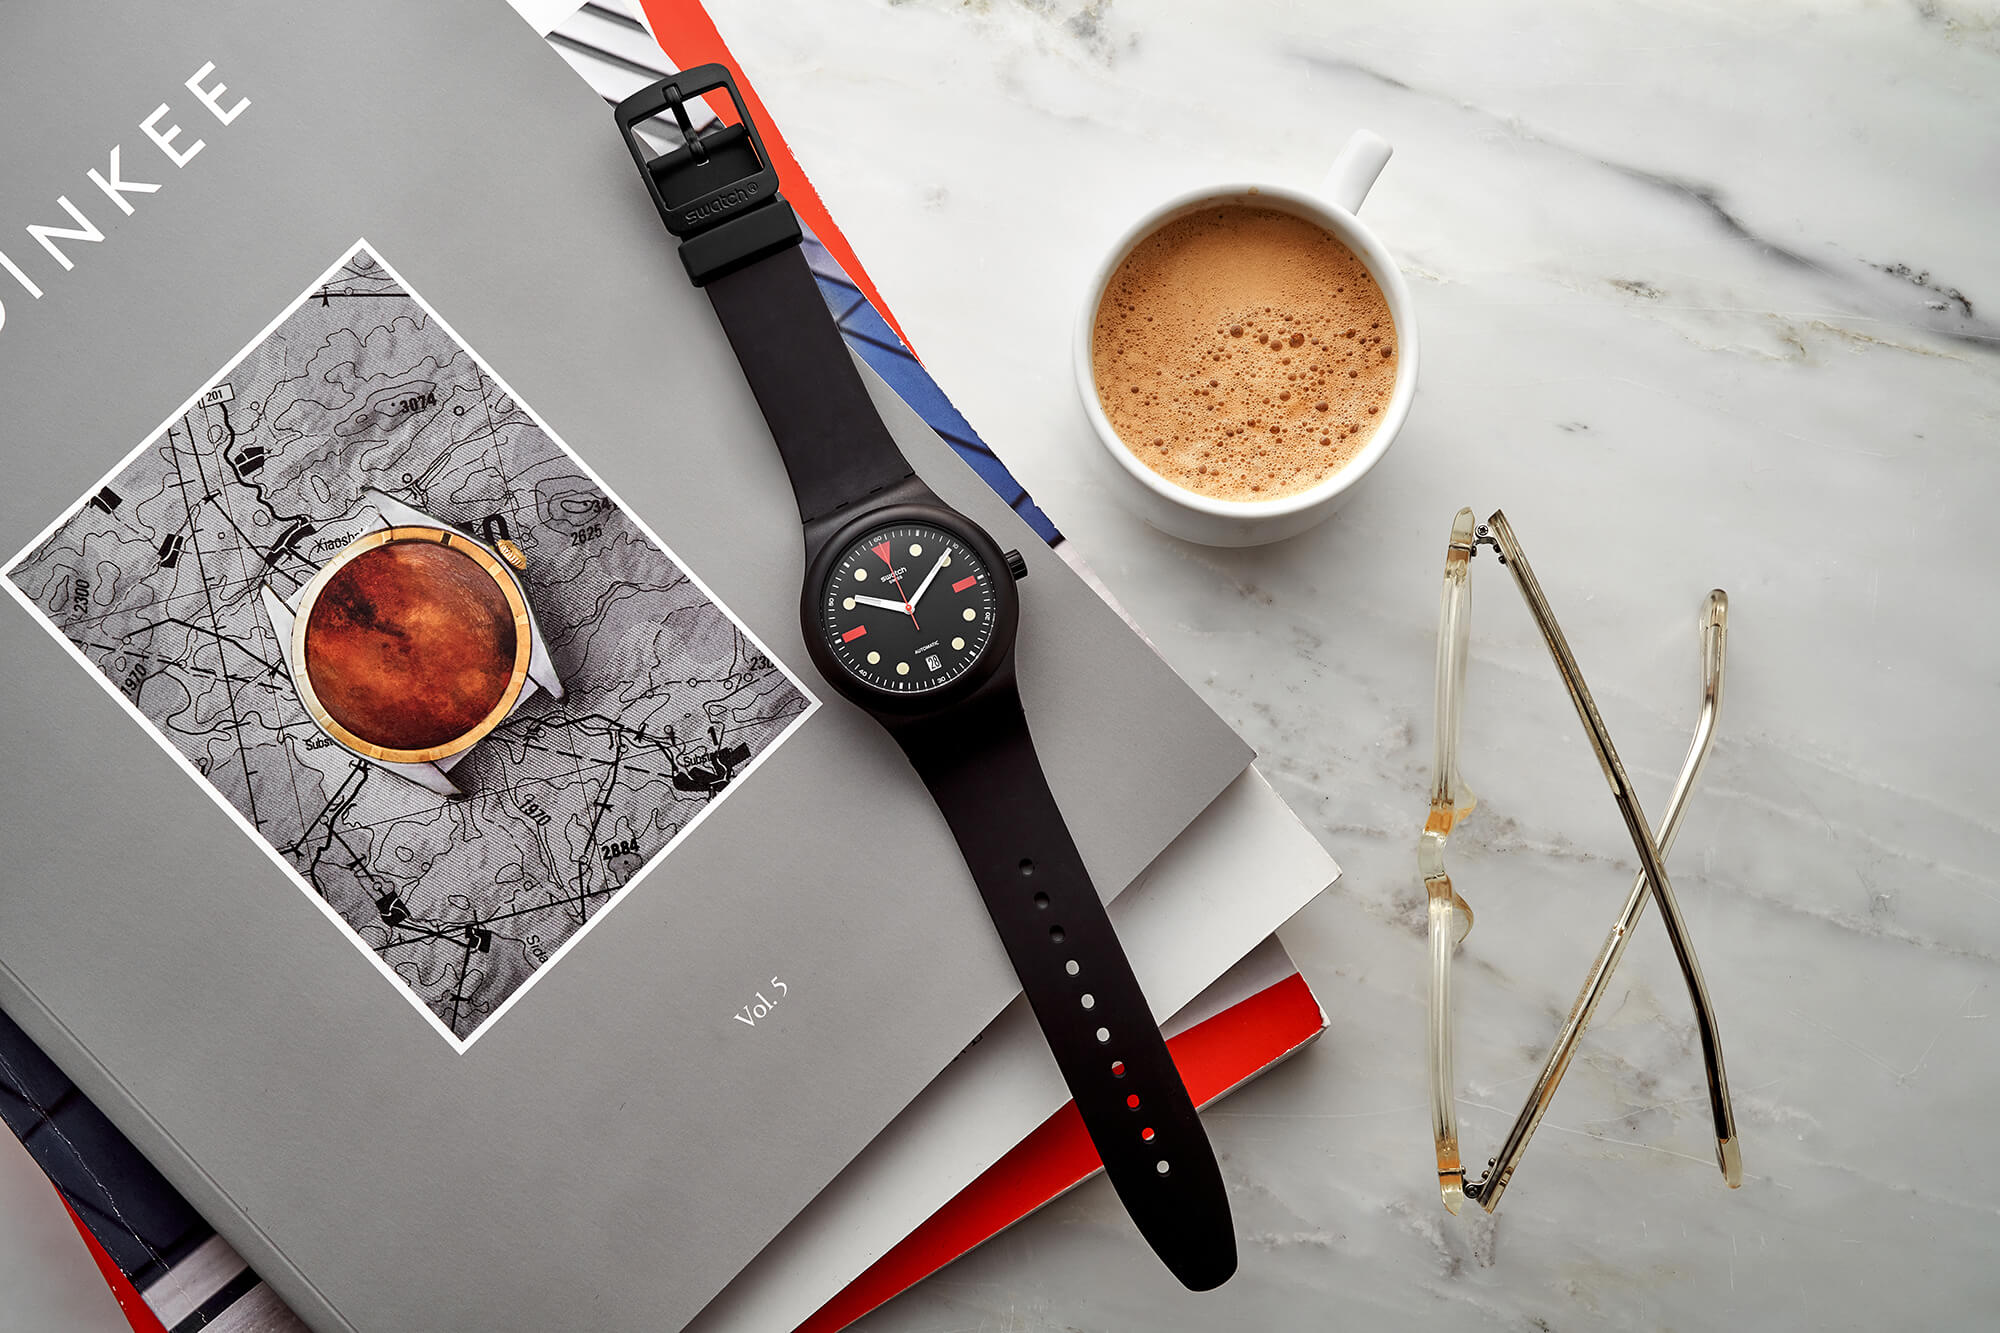 Swatch Sistem51 HODINKEE Generation 1986 Is Inspired by the 80s Emerald Diver